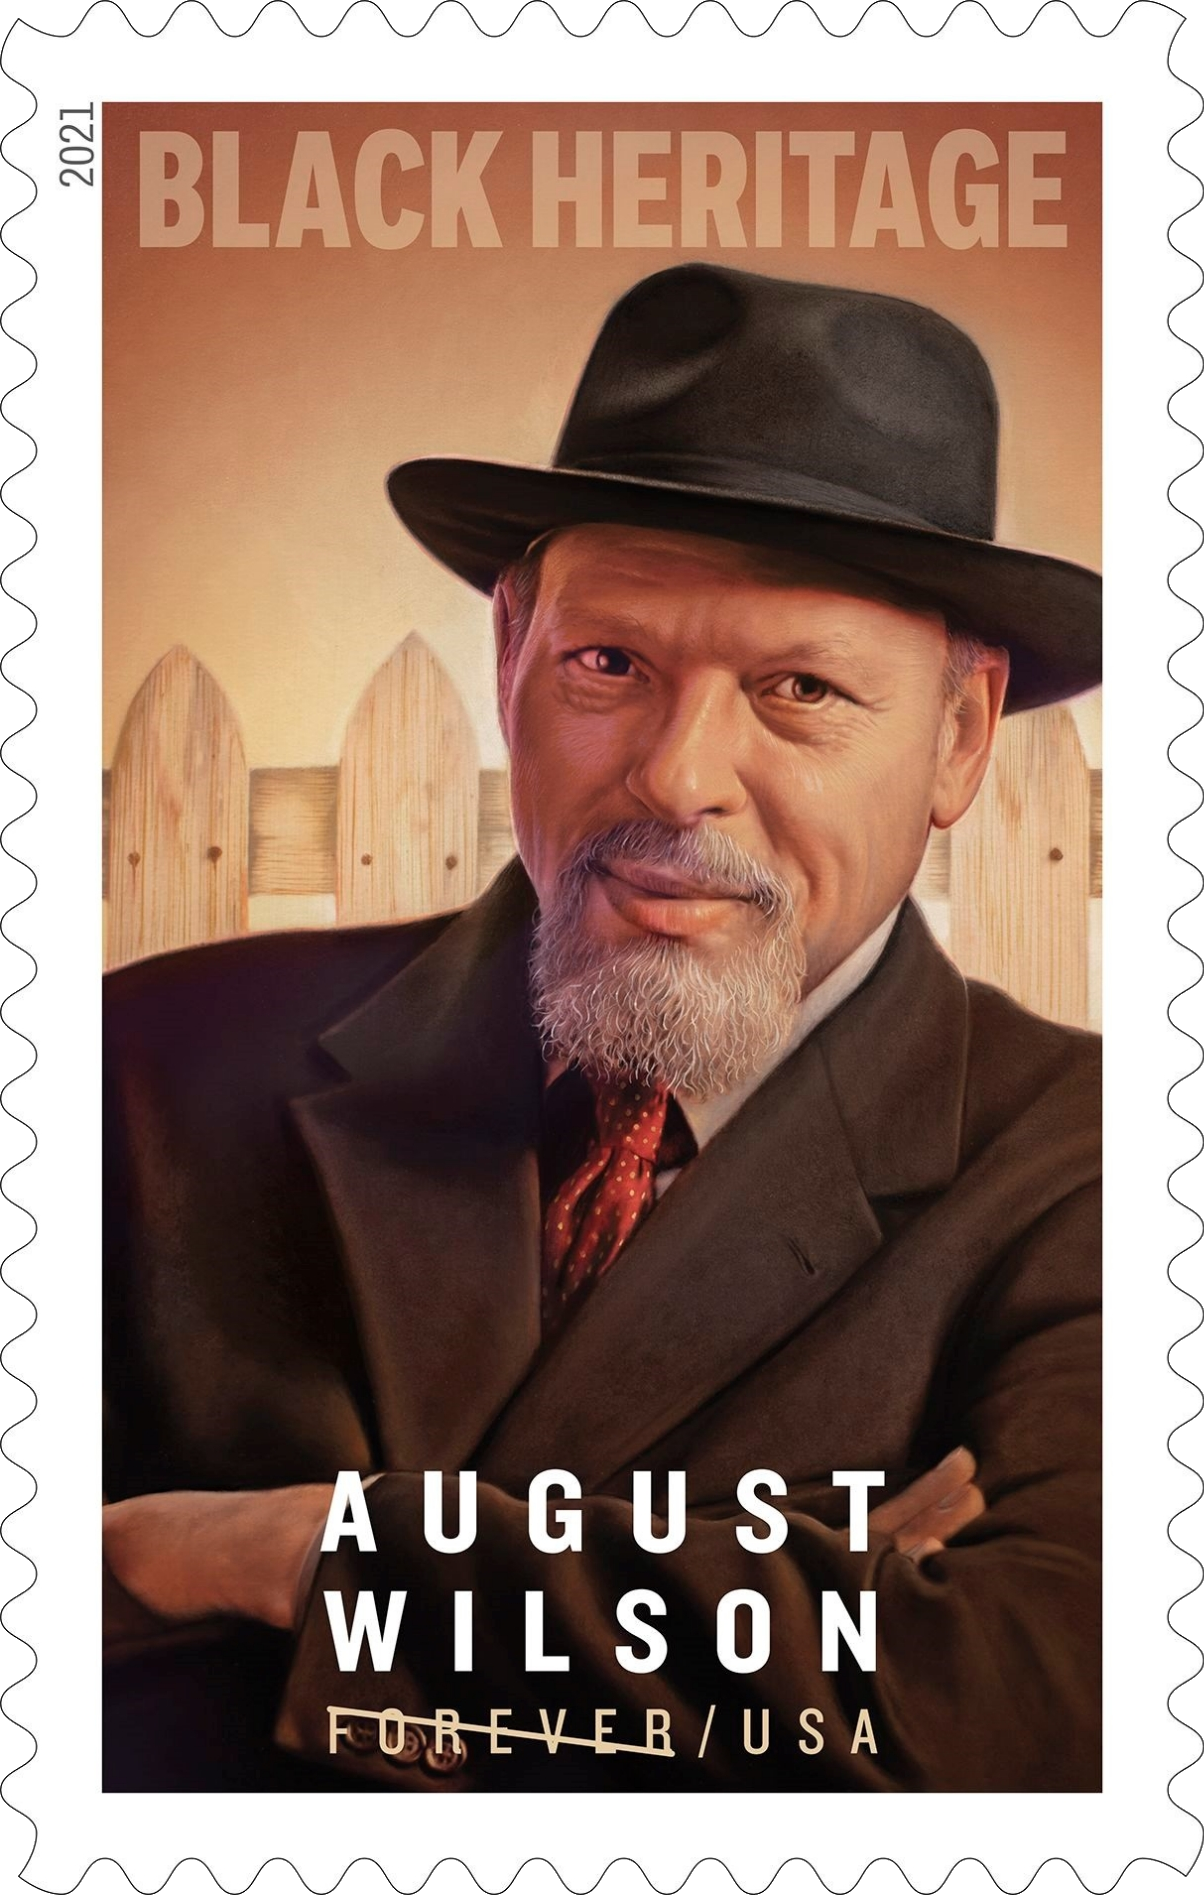 United States: Black Heritage - August Wilson, 28 January 2021